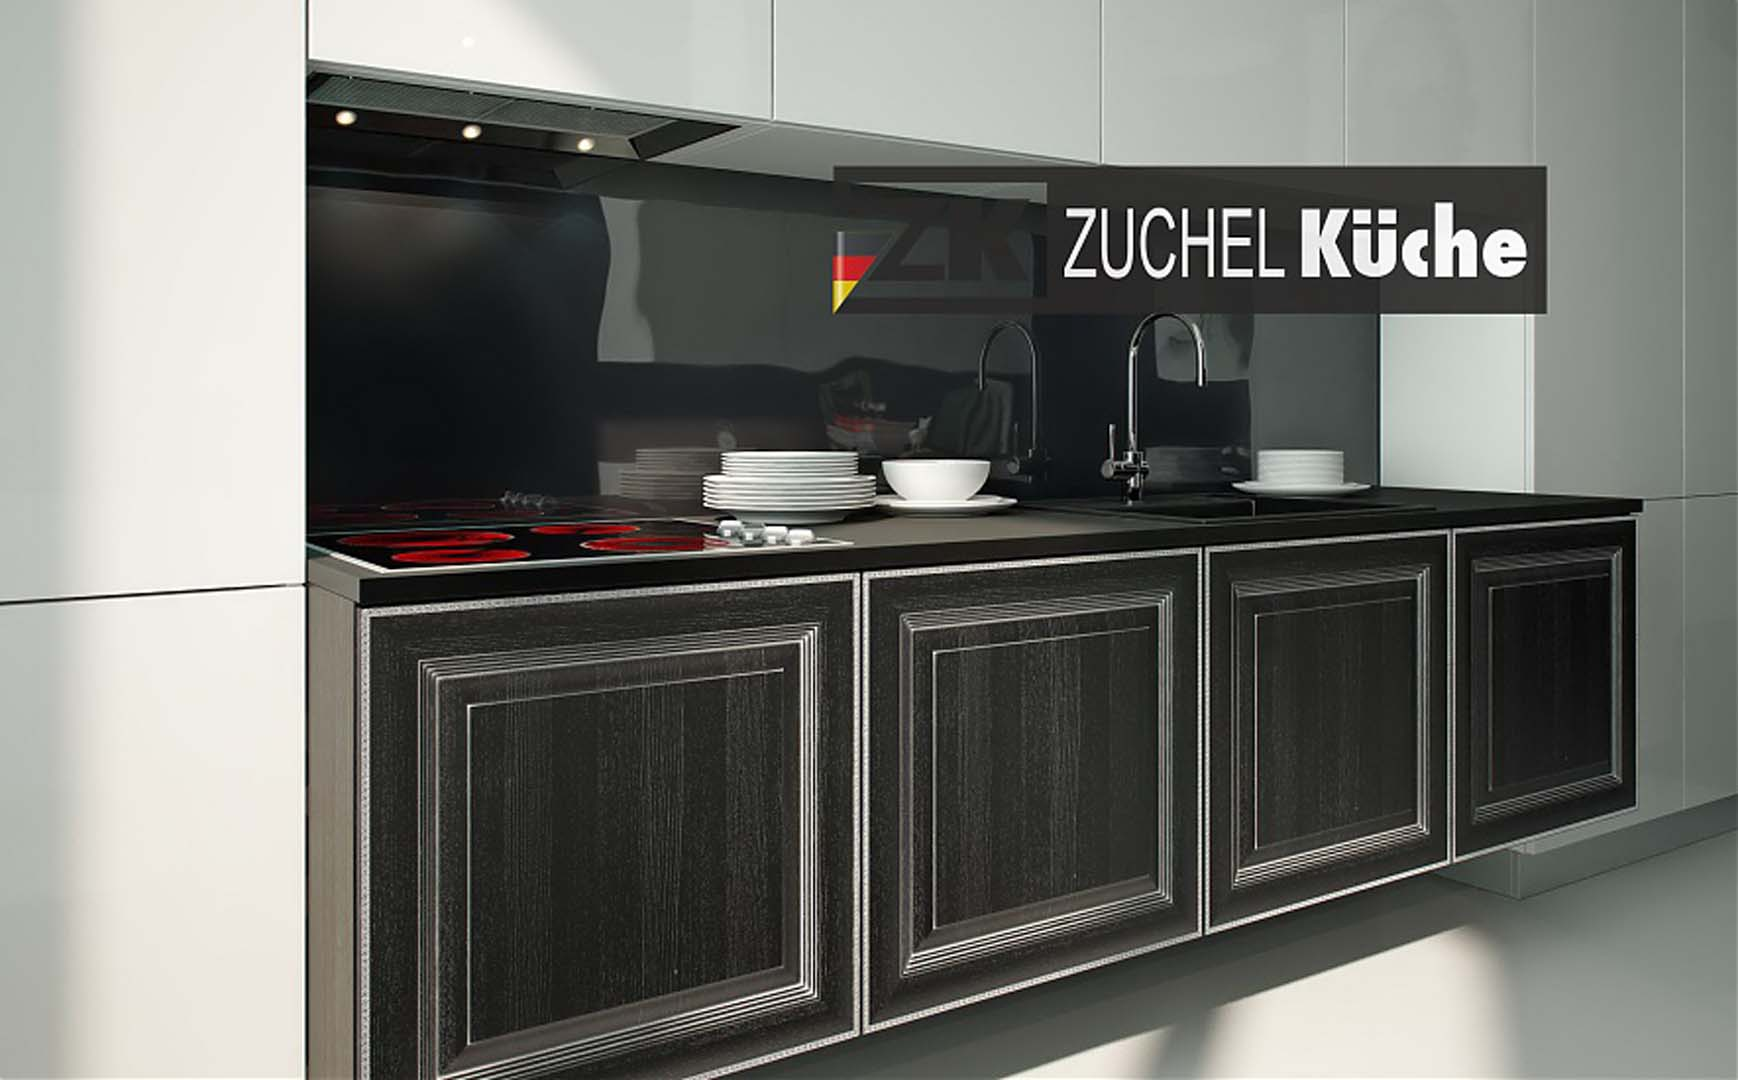 kchen magdeburg trendy md with kchen magdeburg simple modern colbitzer kchenstudio ihr in der. Black Bedroom Furniture Sets. Home Design Ideas